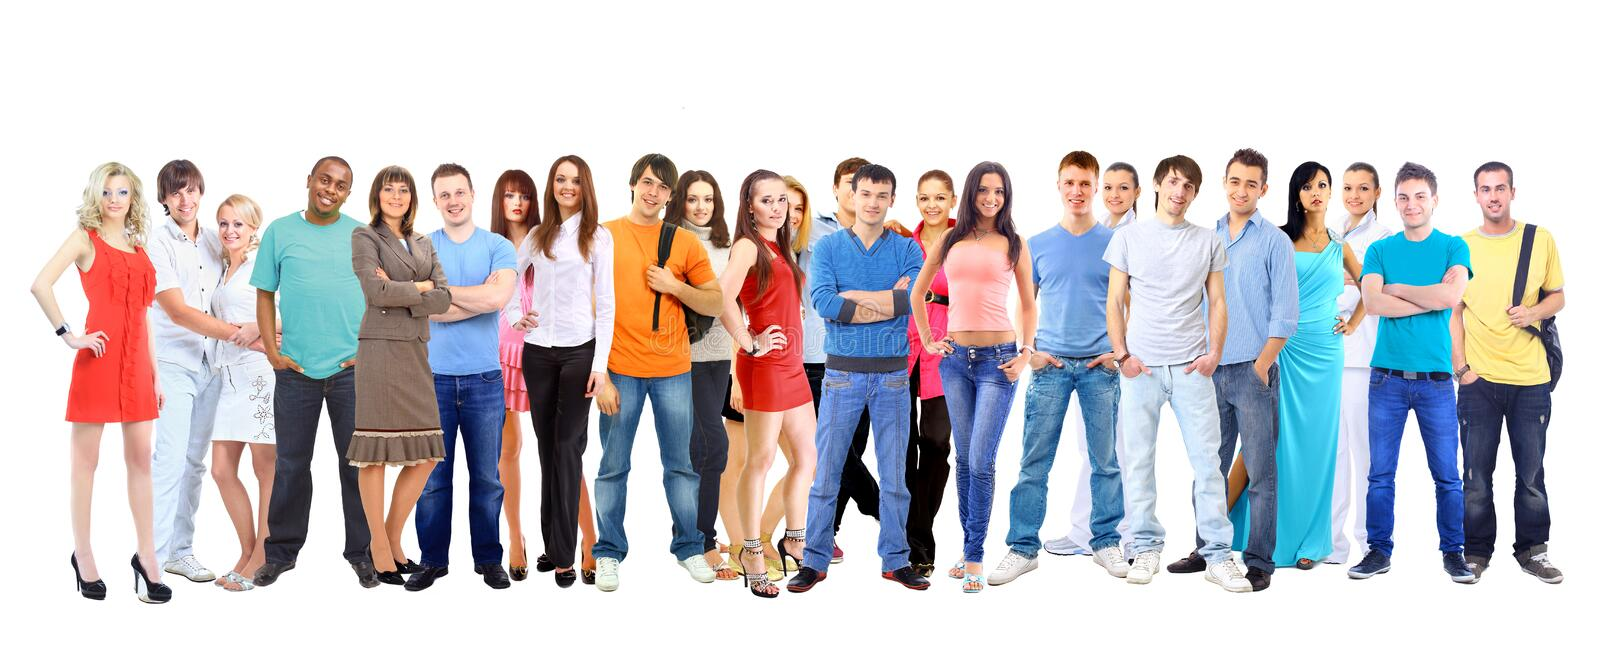 Download Big Group  Students. Over White Background Stock Image - Image: 23057009